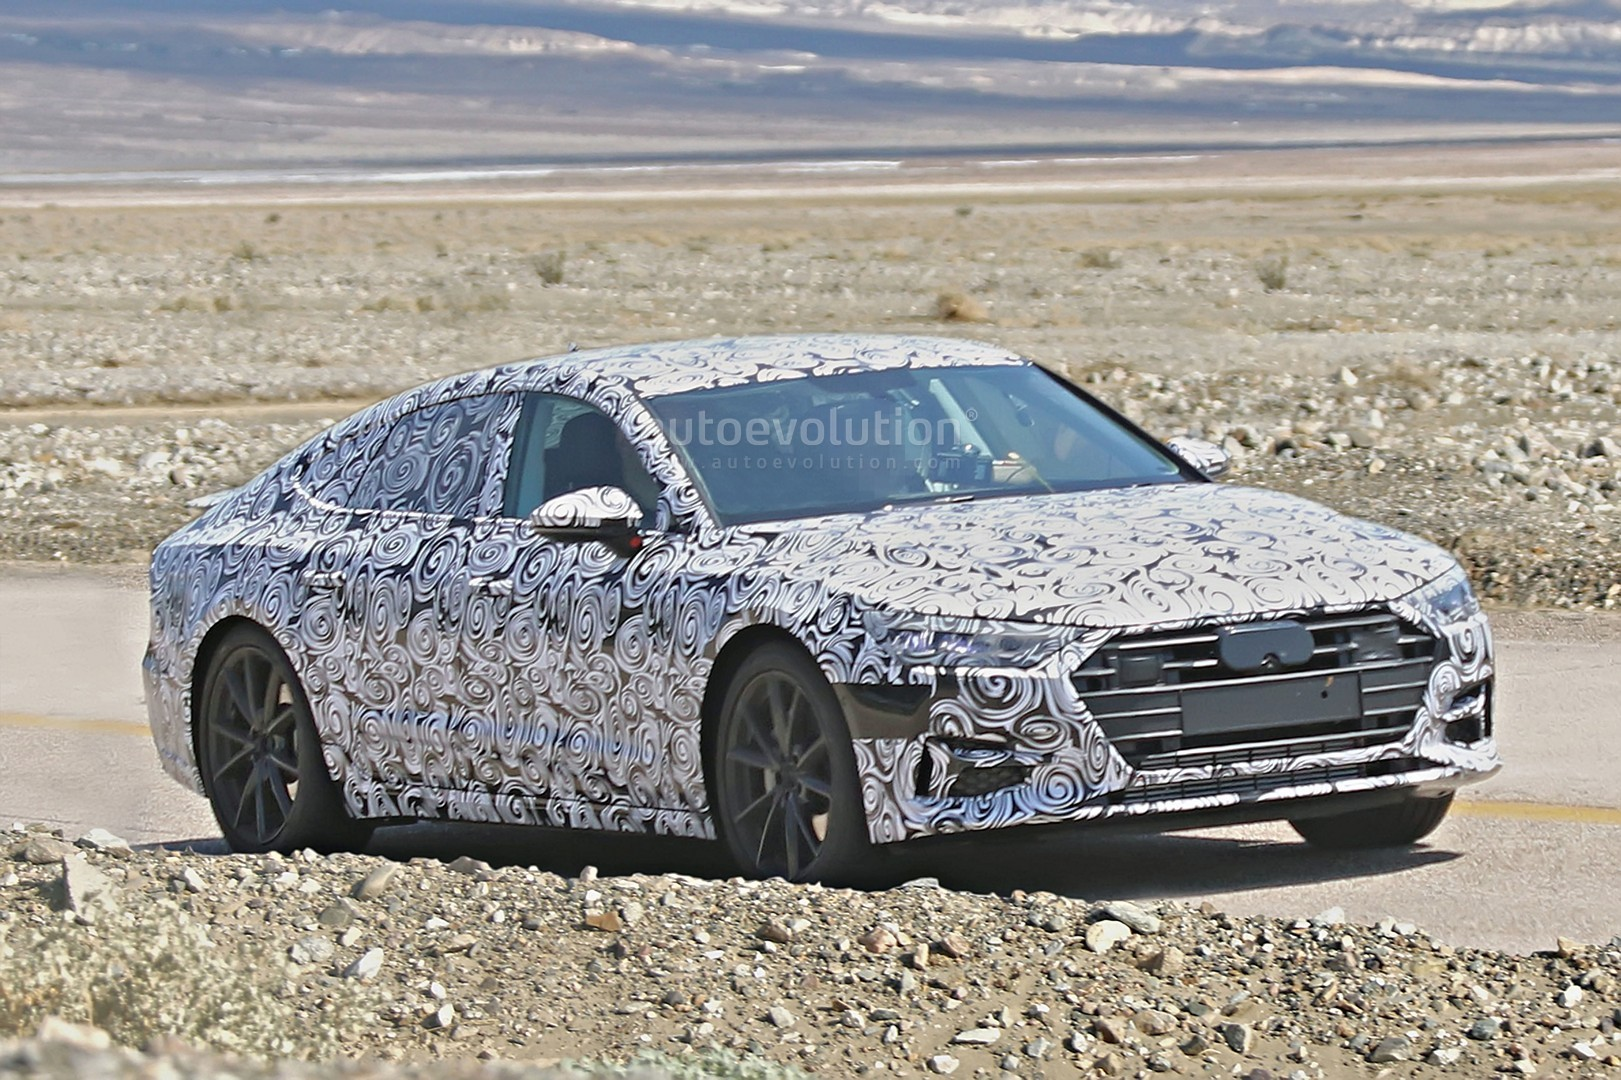 2018 audi a7 detailed spy photos reveal it could be electric or hydrogen powered autoevolution. Black Bedroom Furniture Sets. Home Design Ideas